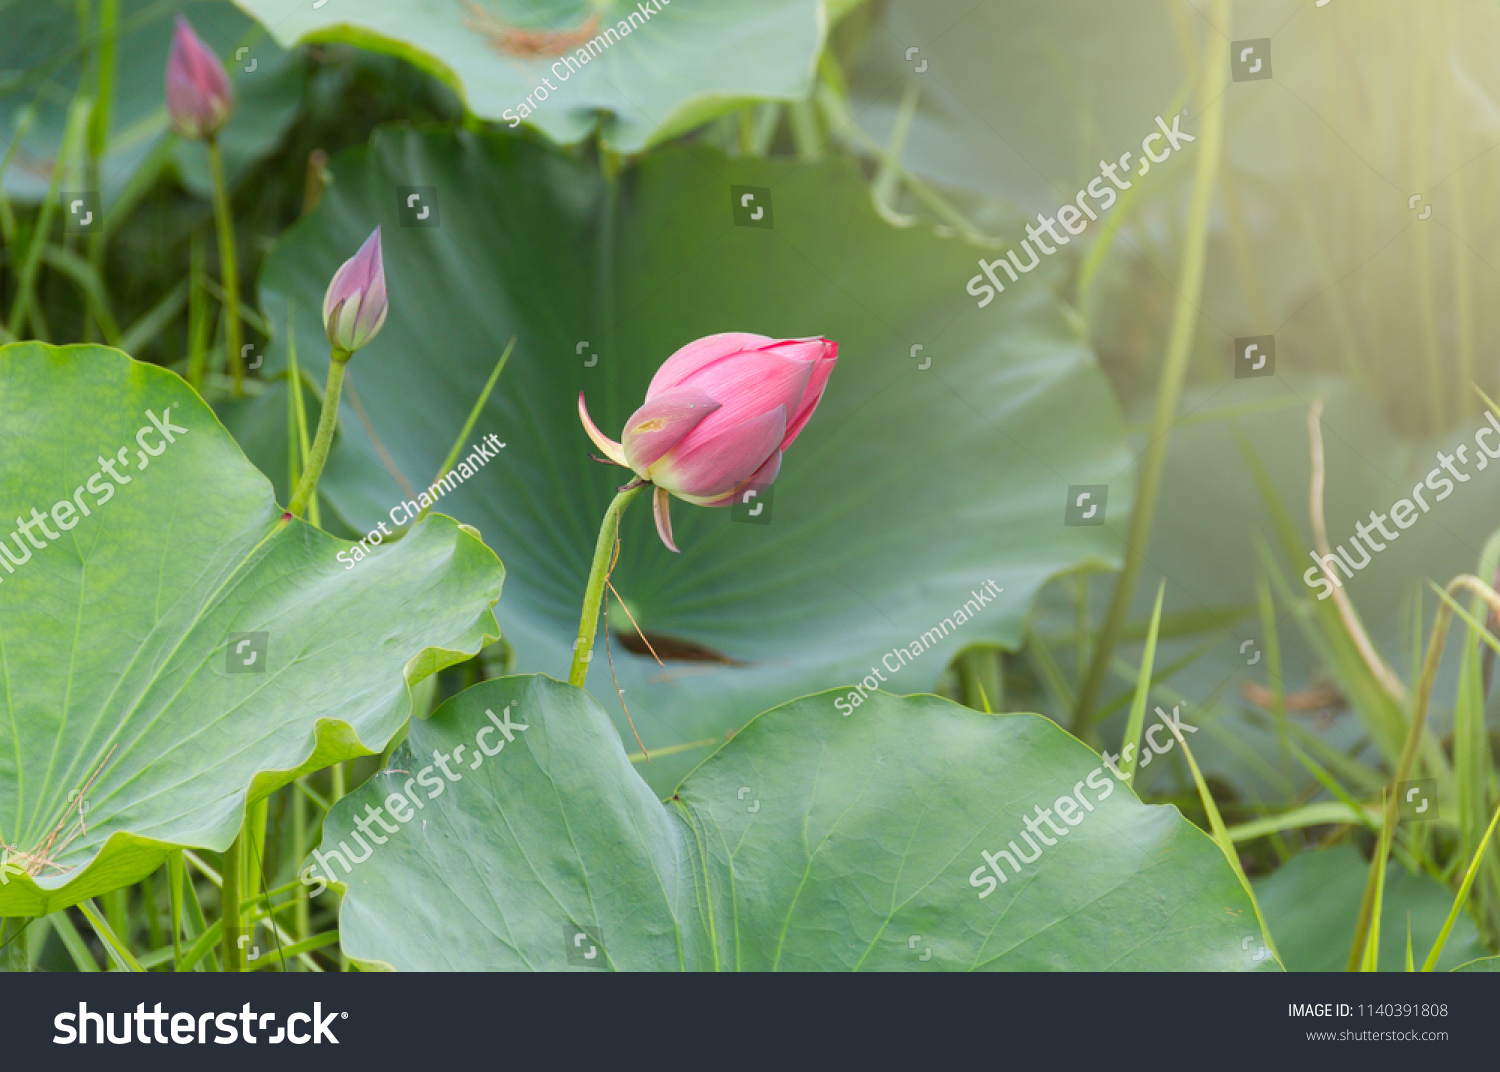 Pink Lotus Flower Buds And Lotus Leaves With Grass In The Swamp